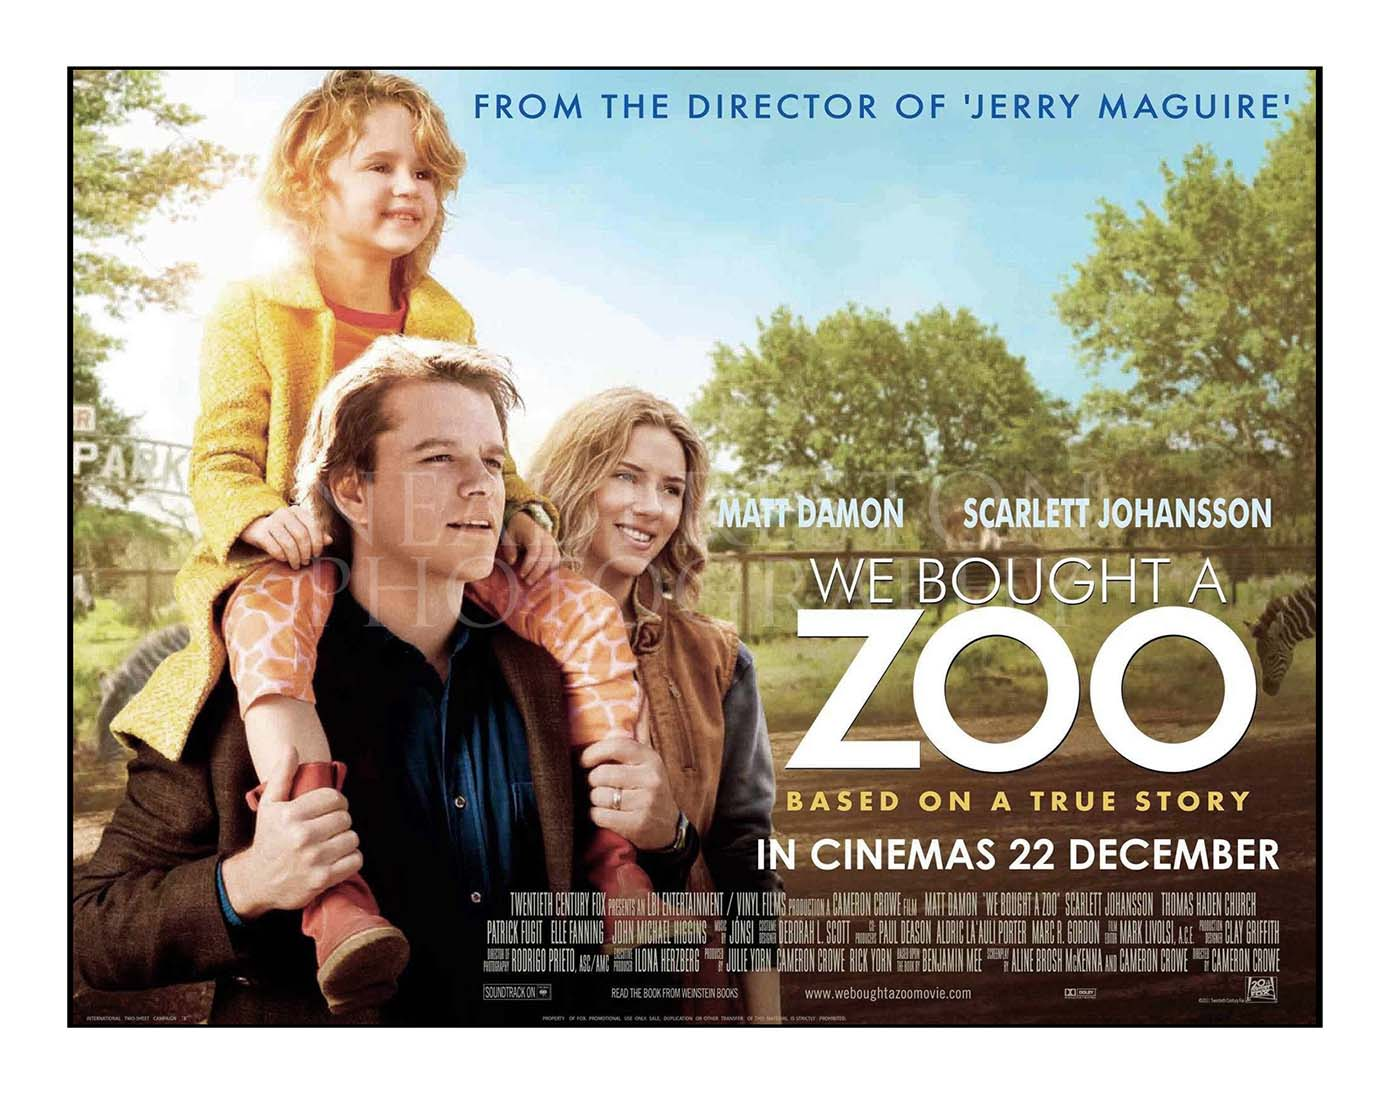 we_bought_a_zoo_posterjpg_99eb687771f17f57 copy.jpg